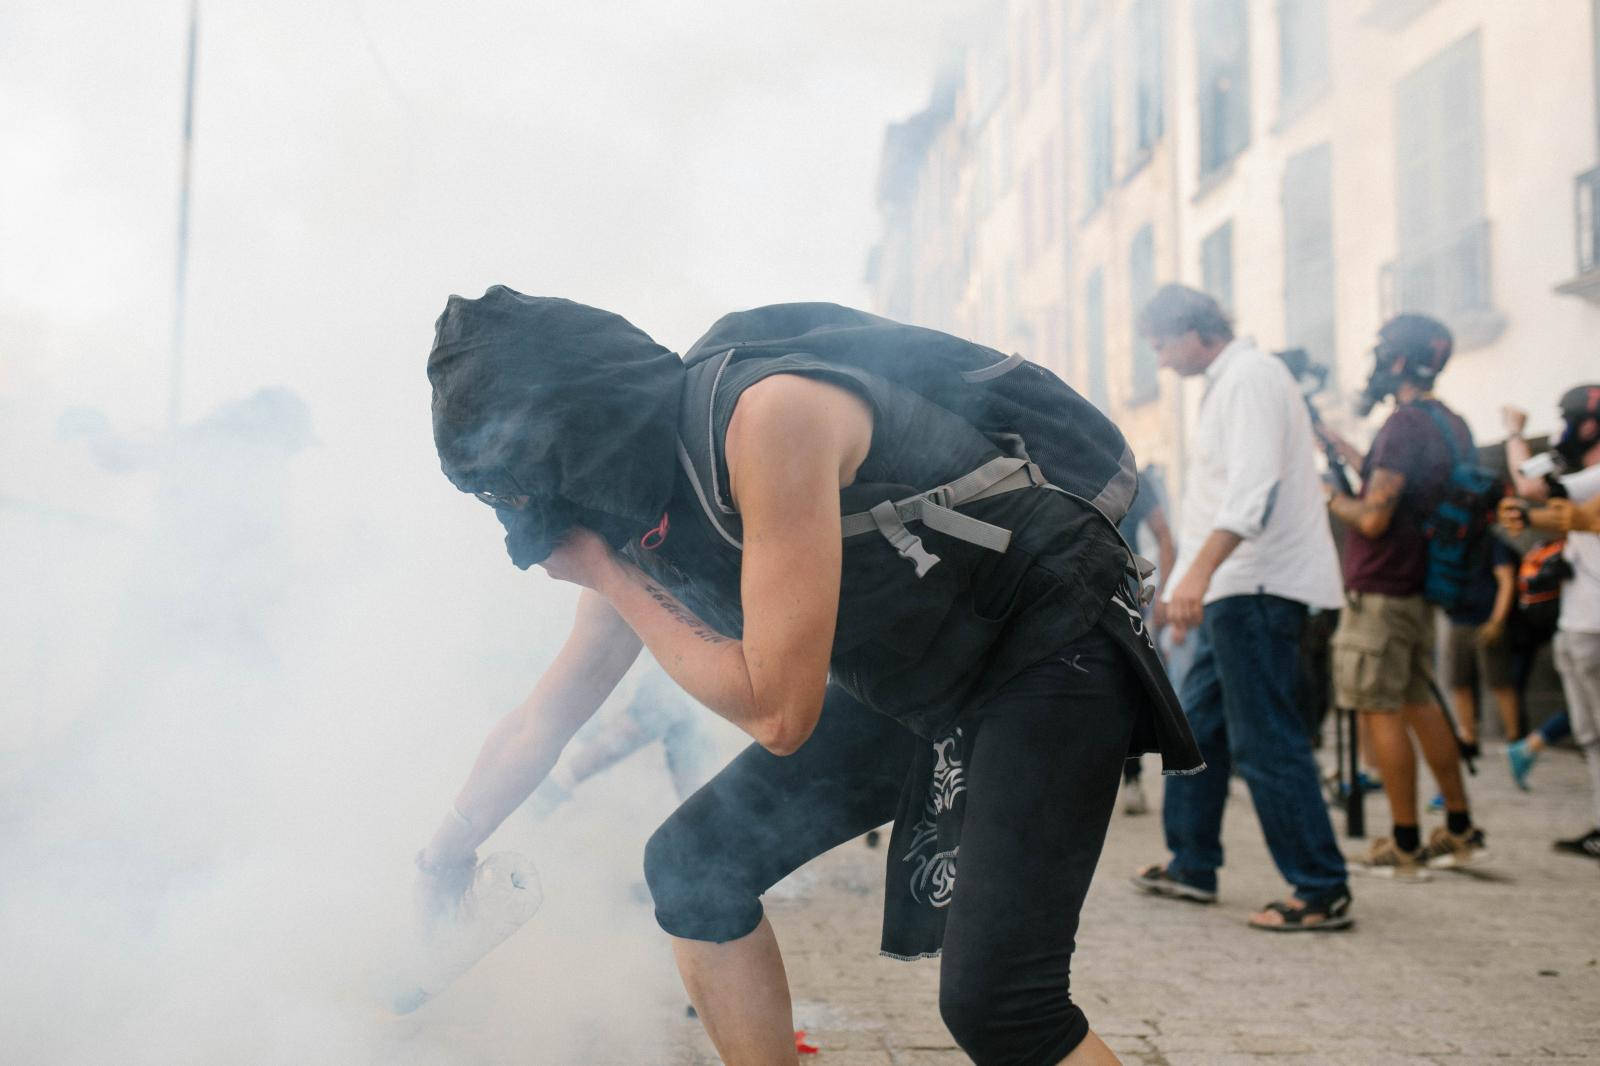 2019-08-24 - Protester extinguishes tear-gas fired by police.